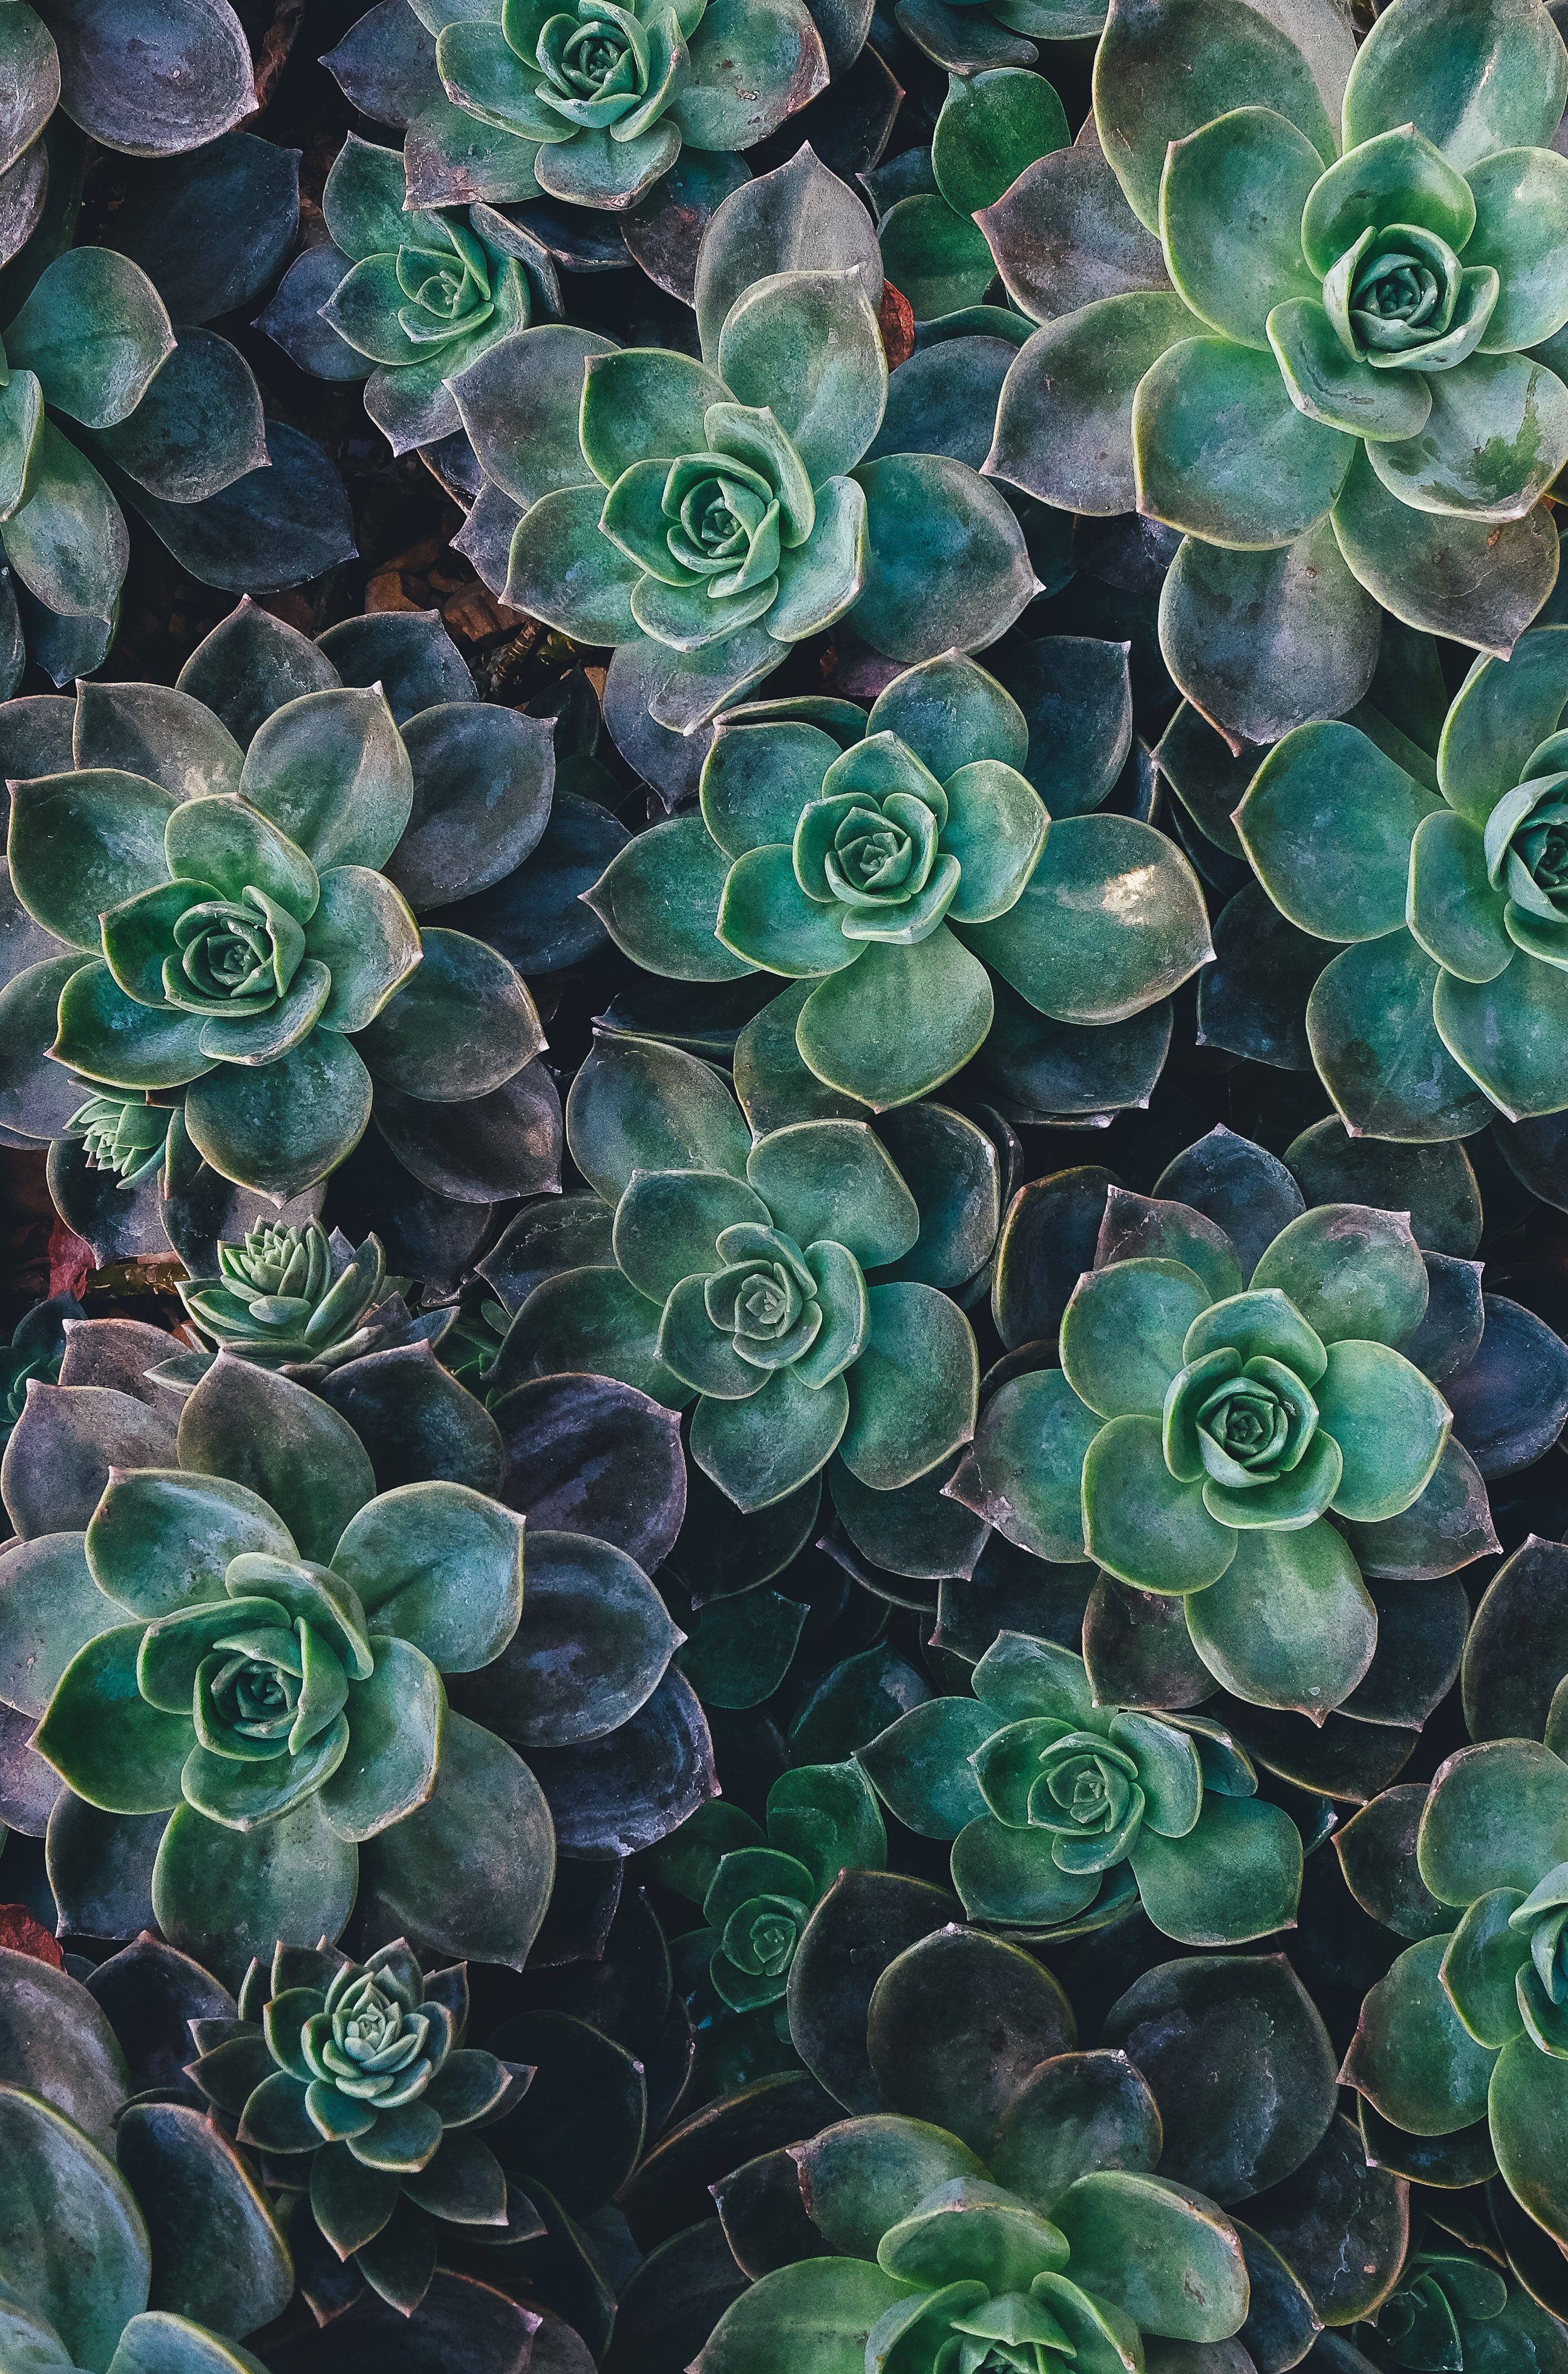 An Overhead Shot With Moist Succulent Rosettes Filling The Entire